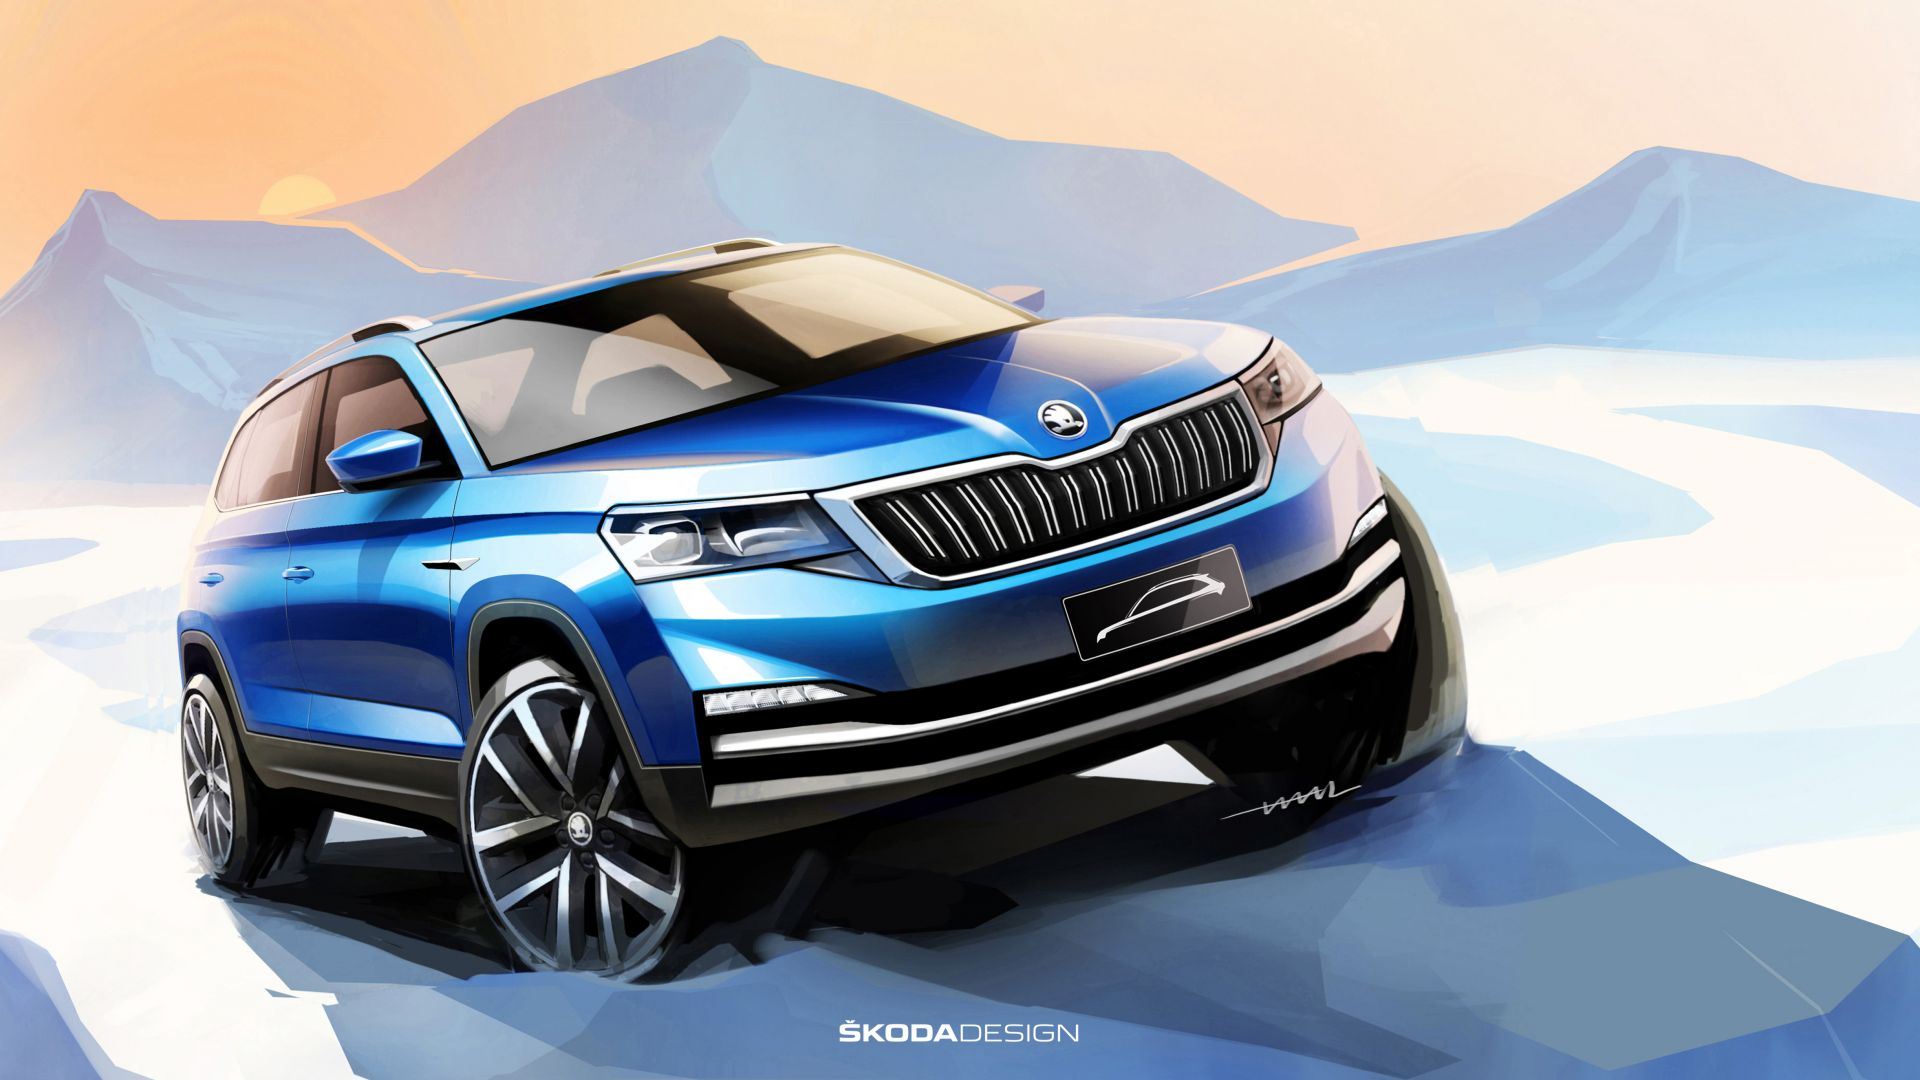 wallpaper skoda kodiaq poster 2019 cars suv 4k cars bikes 18121. Black Bedroom Furniture Sets. Home Design Ideas